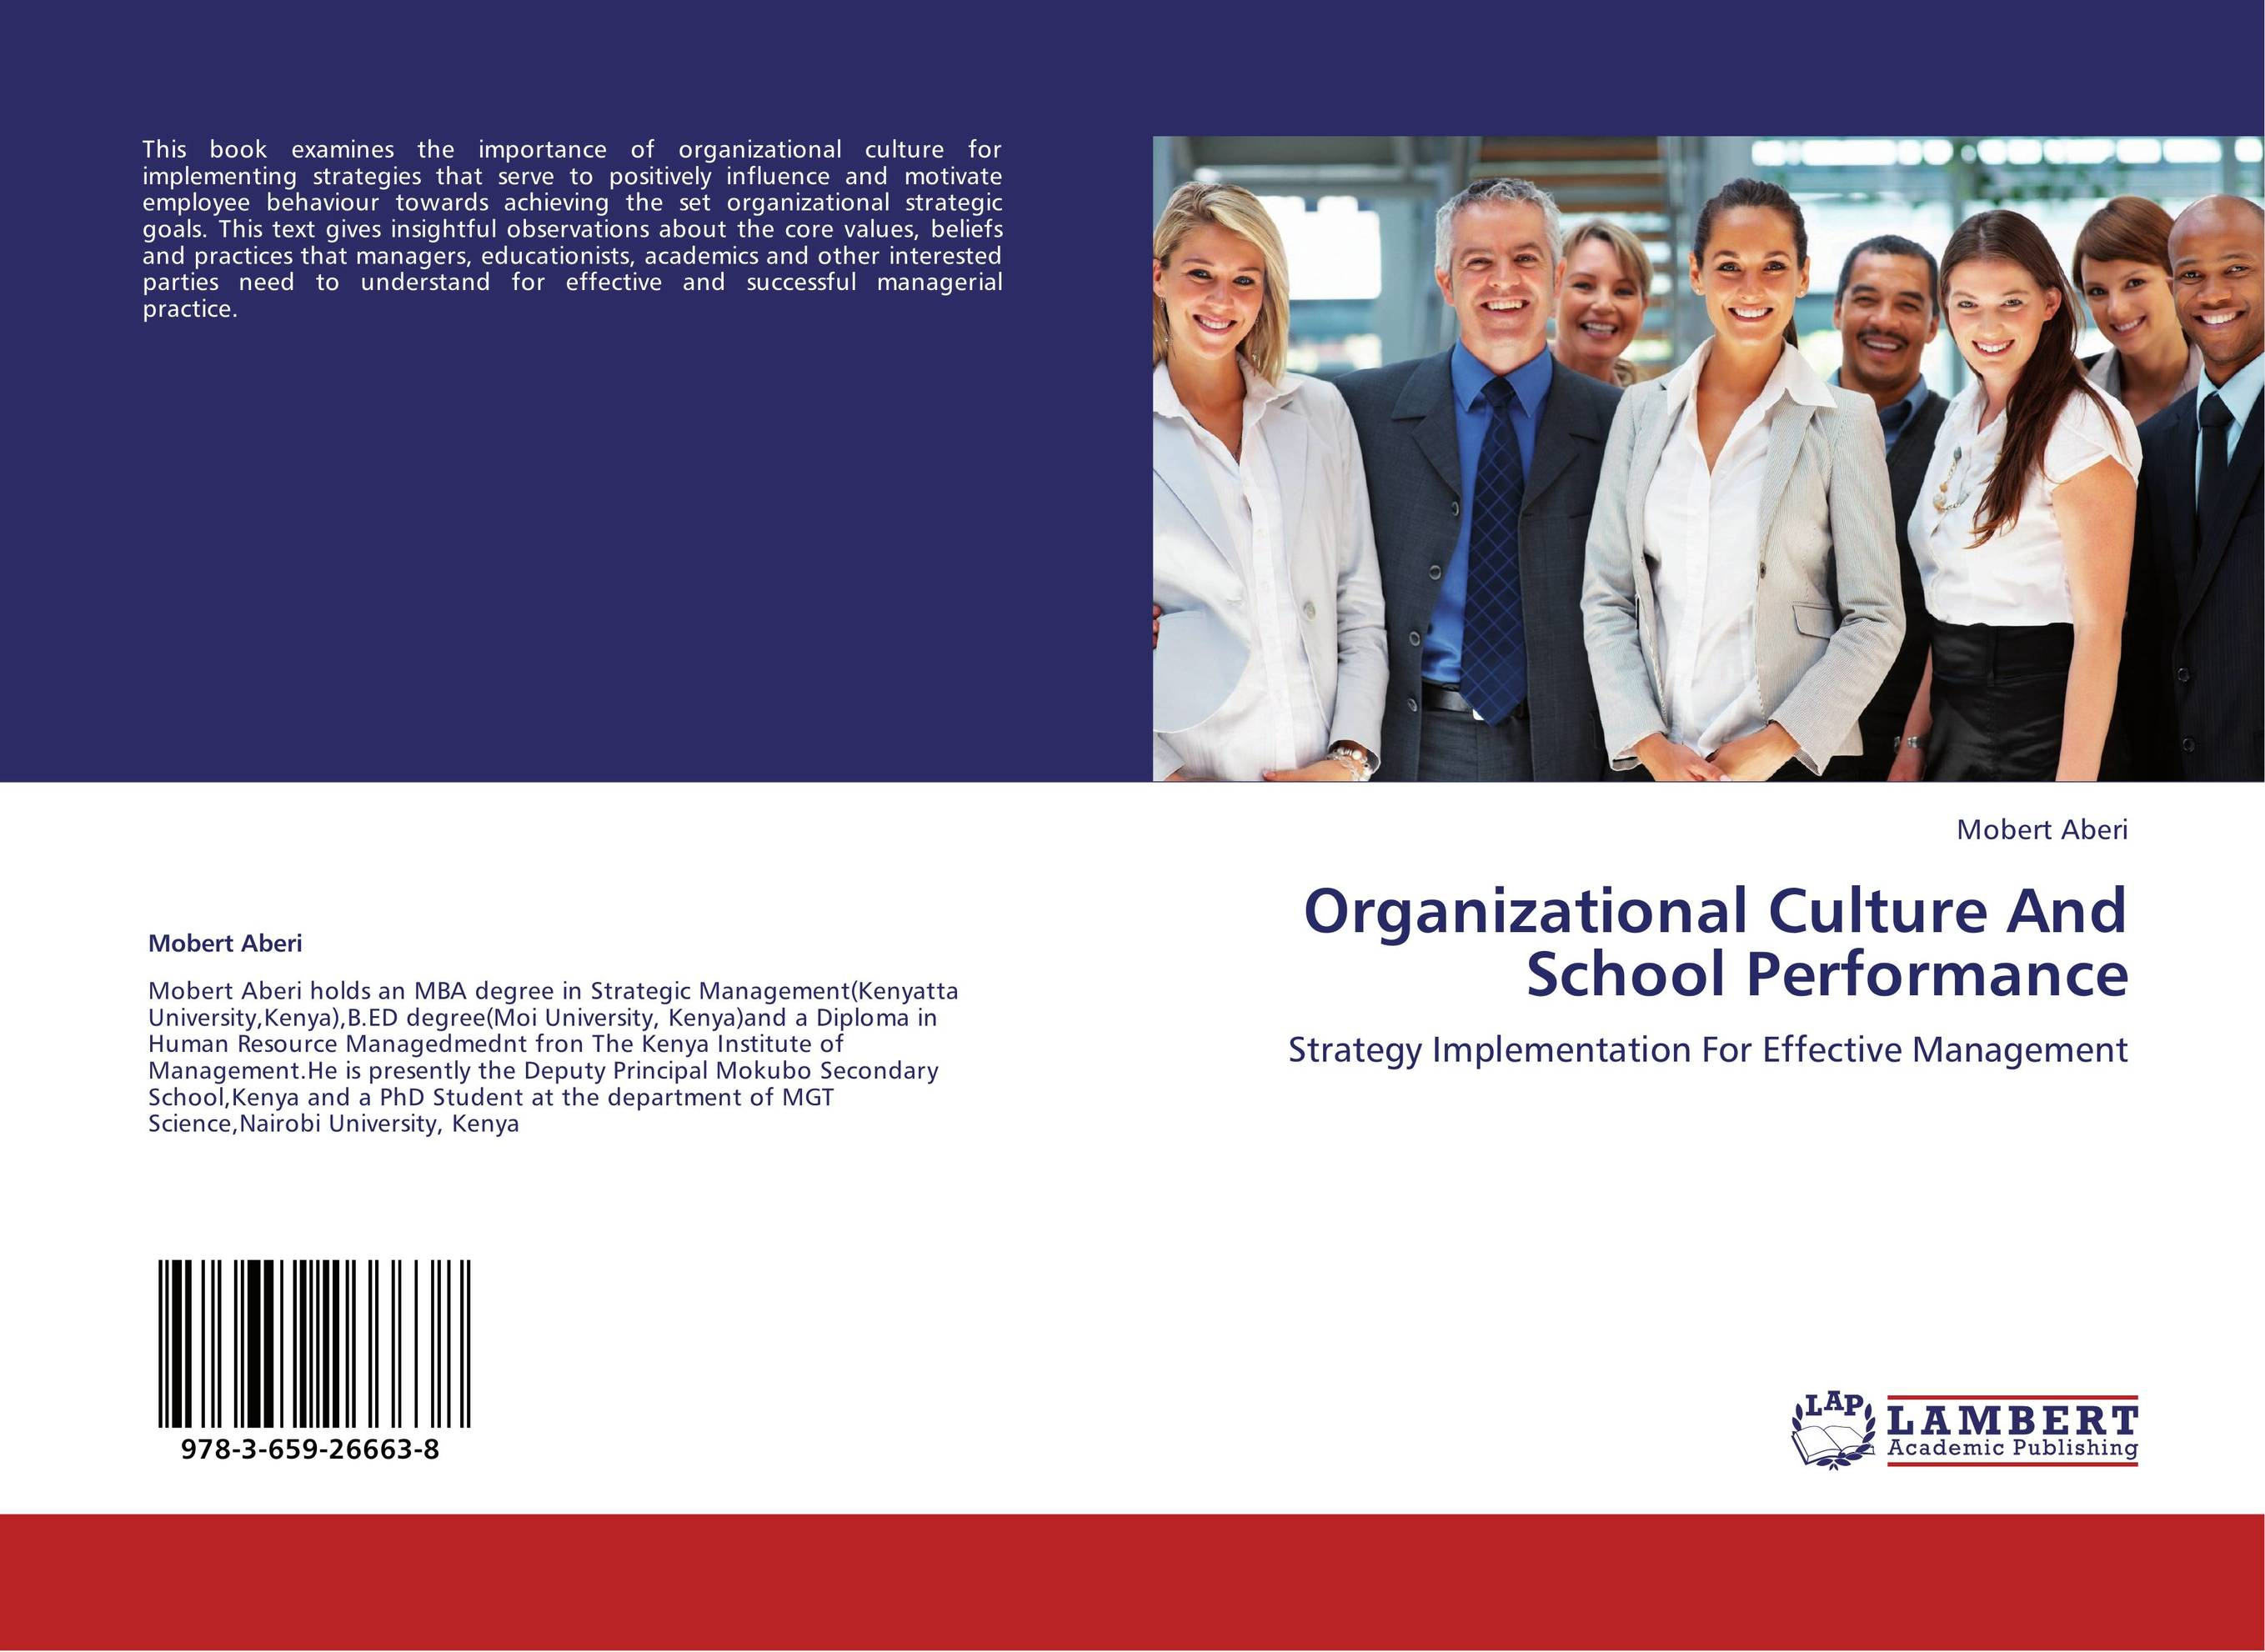 organizational culture and performance Organizational culture can be viewed as an important concept in organizational psychology and social psychology it is important to define organizational culture there are many possible definitions of organizational culture below is one organizational culture definition.